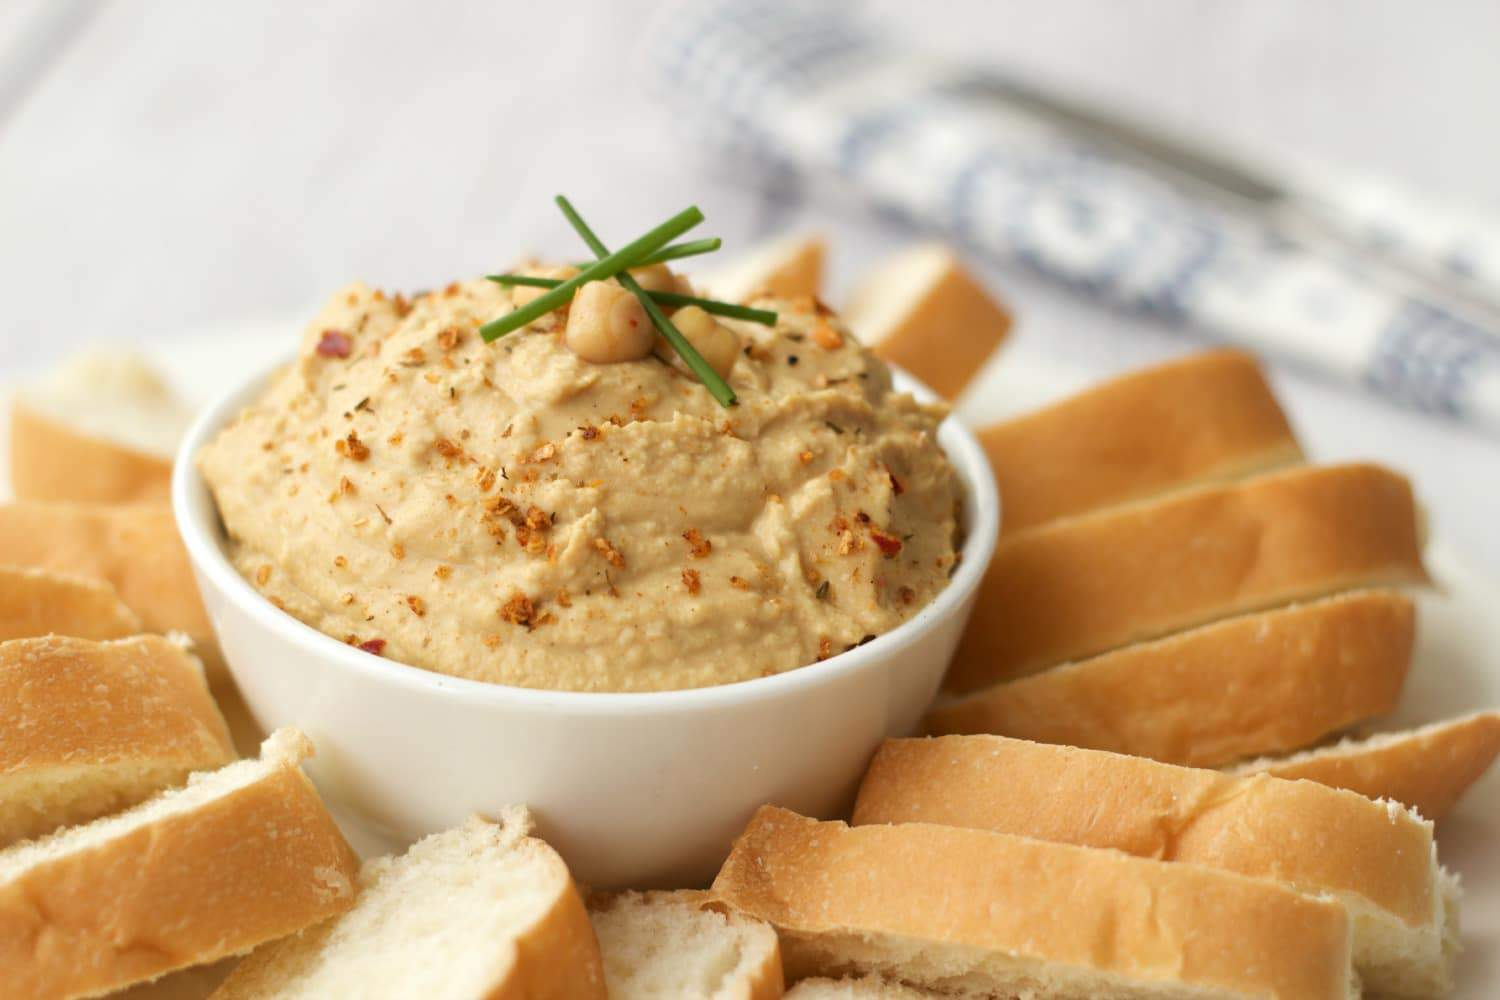 Spicy vegan hummus in a white bowl surrounded by sliced bread.